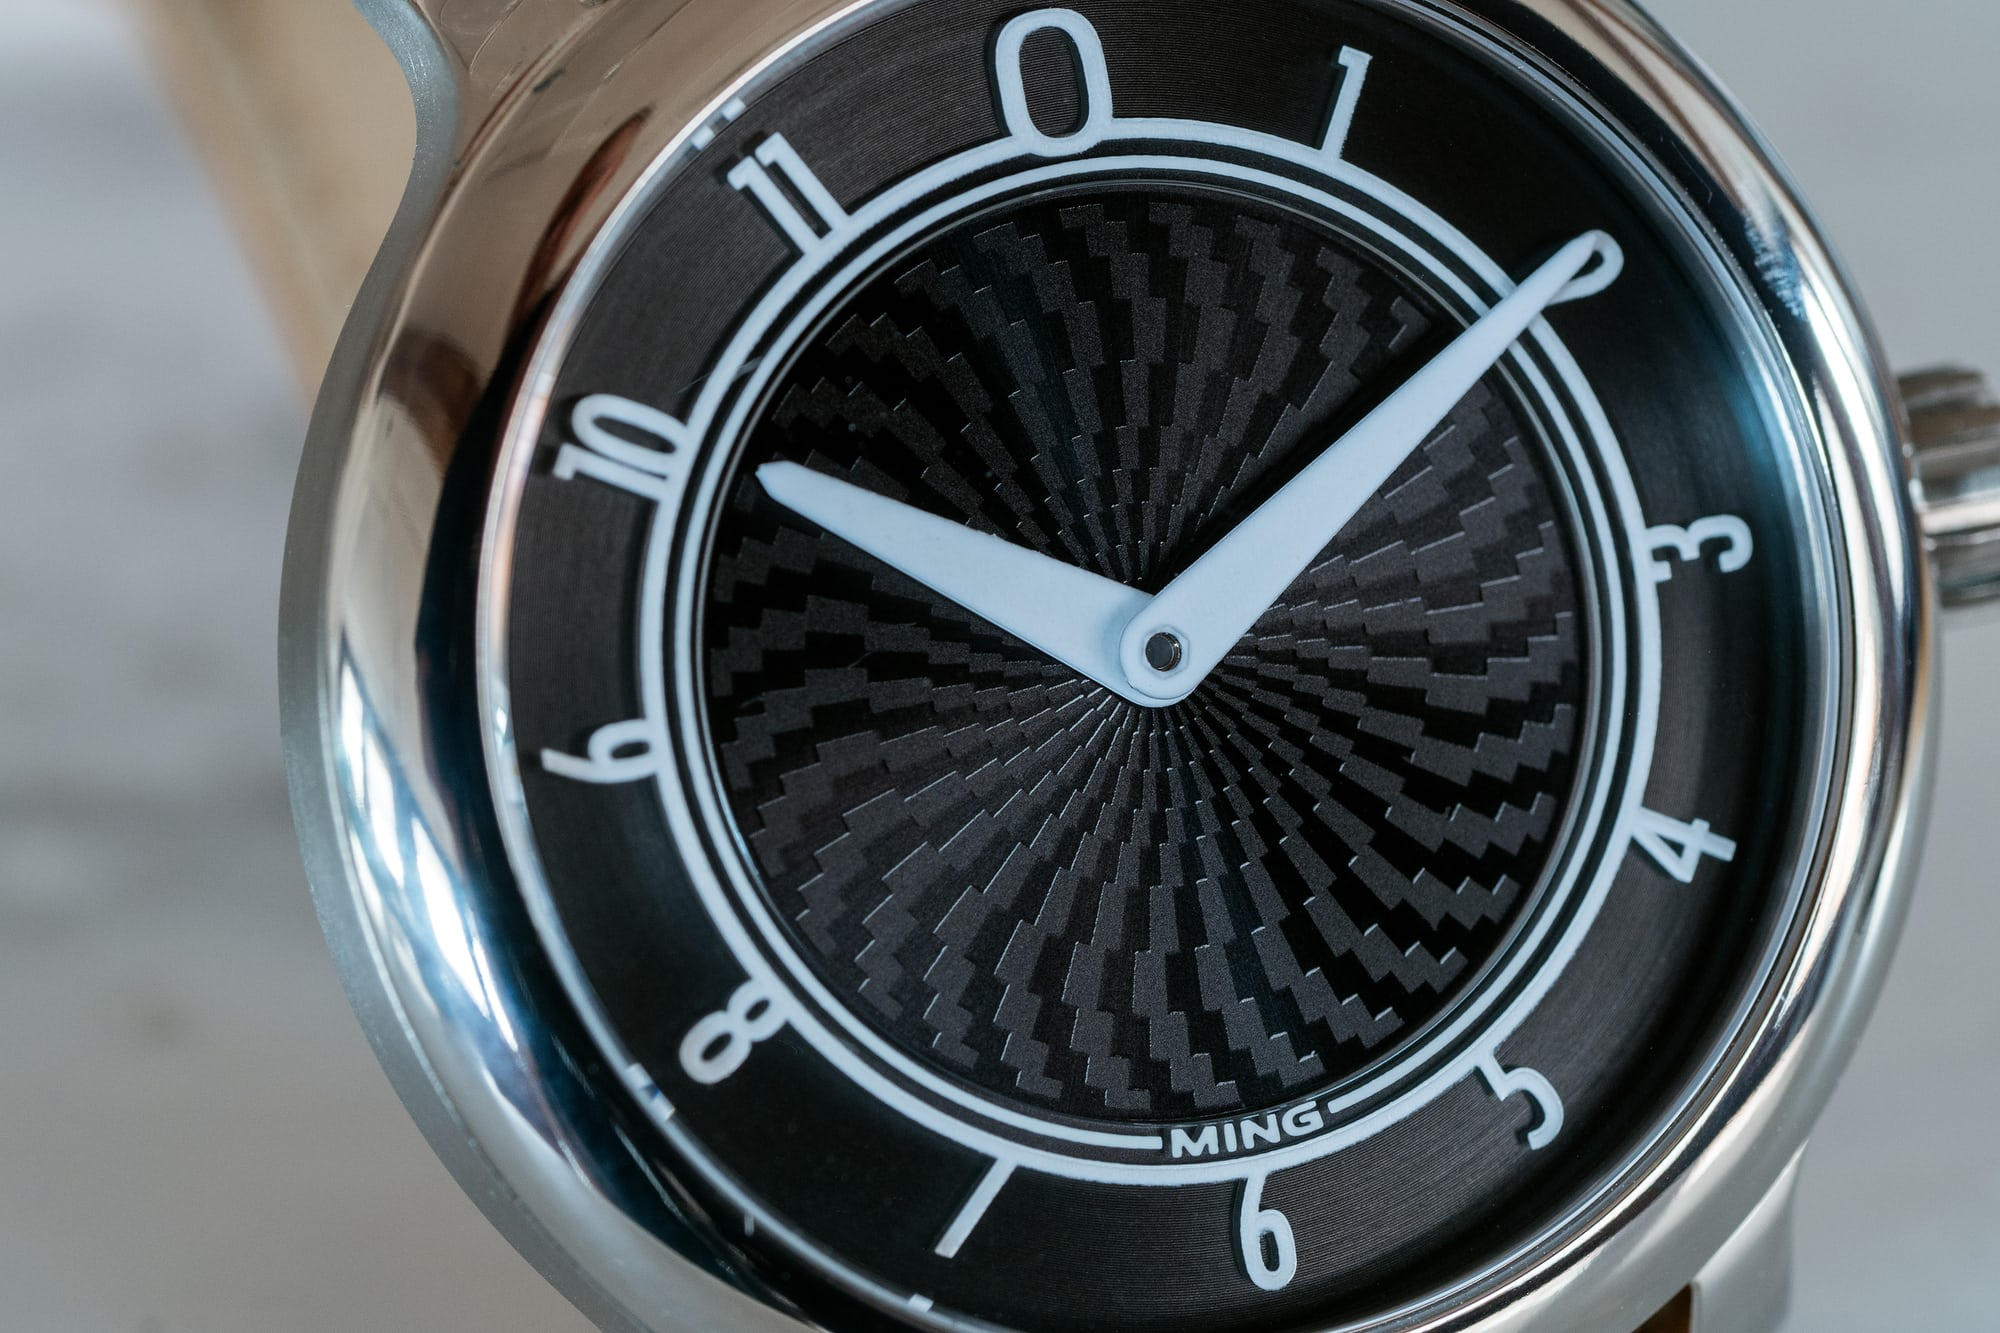 Ming 17.01 Anthracite dial closeup